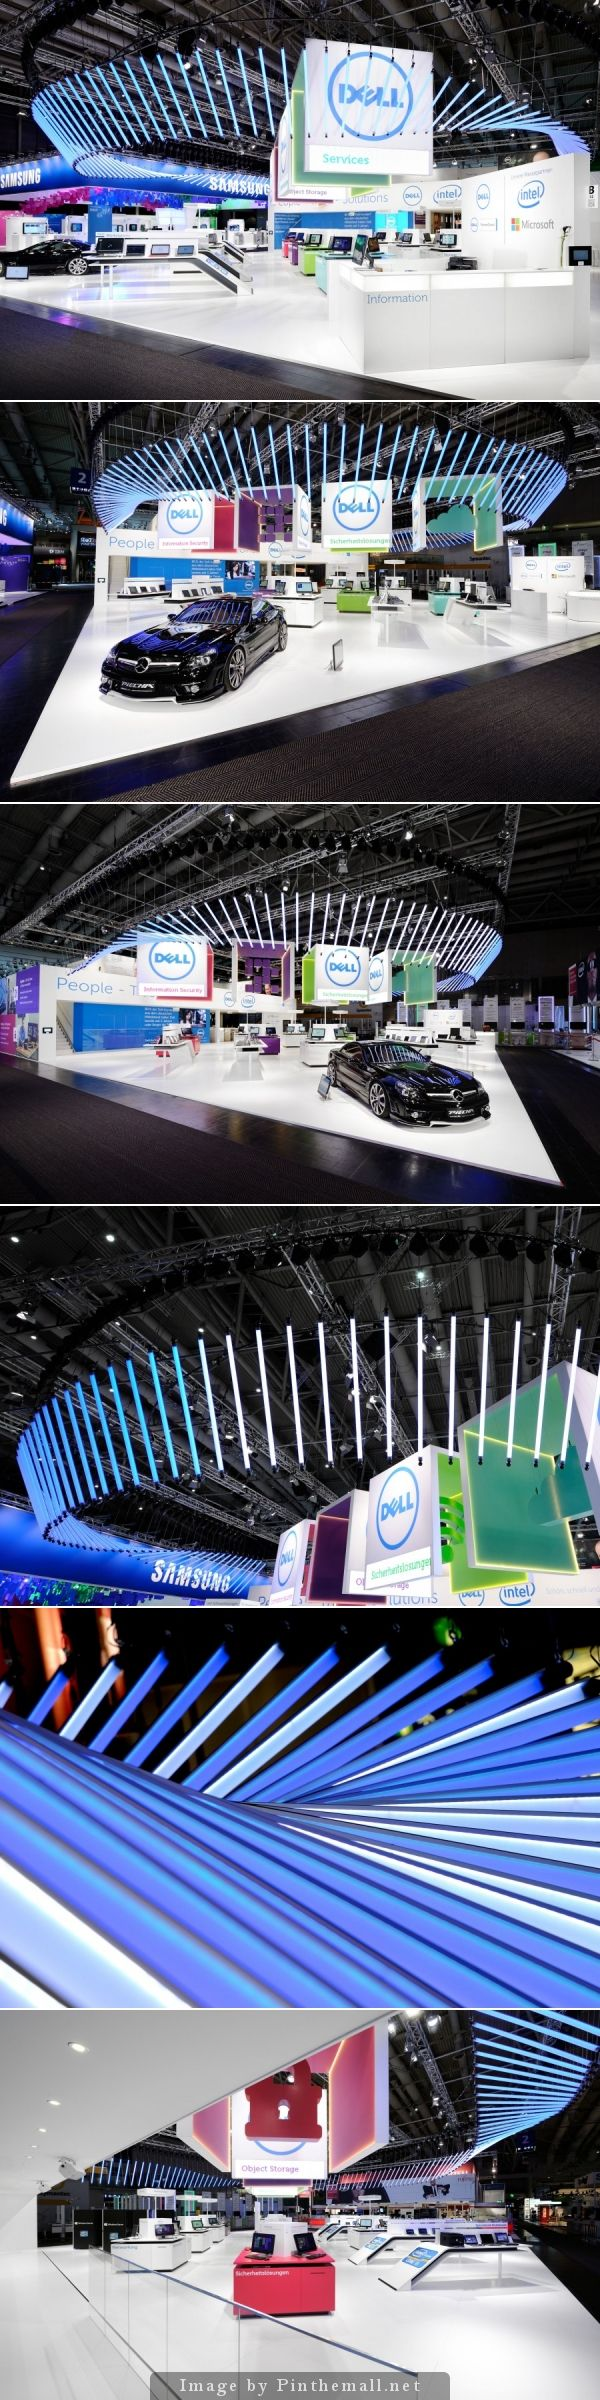 the DELL trade fair stand at CeBIT trade fair 2013 in Hanover - created via http://pinthemall.net  #display #booths #eventprofs